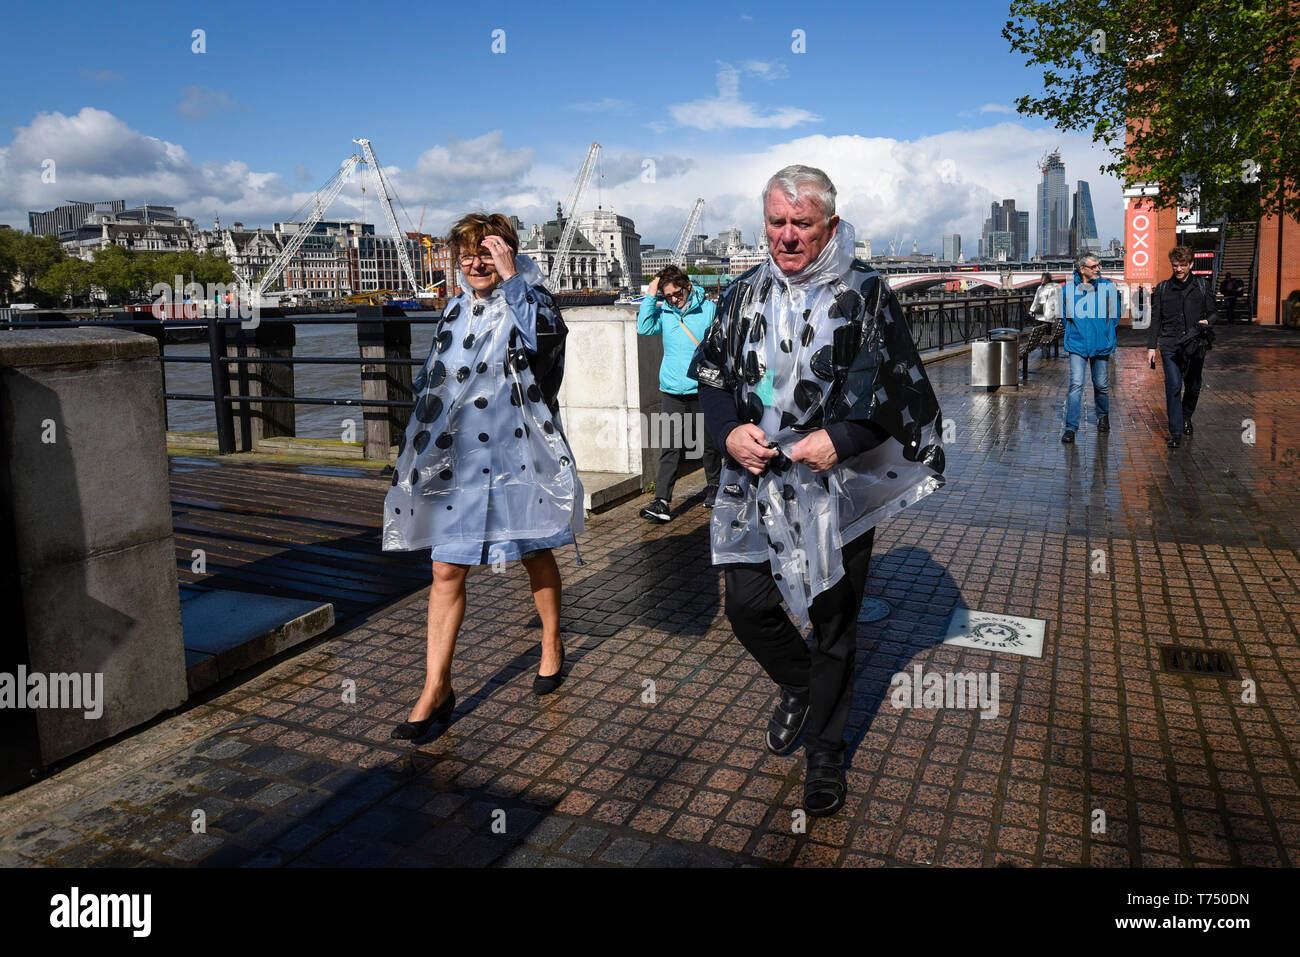 London, UK.  4 May 2019.  UK Weather: Tourists wearing rain ponchos walk on the South Bank after rain clouds brought a shower to central London.  The Bank Holiday weather is forecast to remain cool and potentially, the coldest May Bank Holiday on record.  Credit: Stephen Chung / Alamy Live News - Stock Image